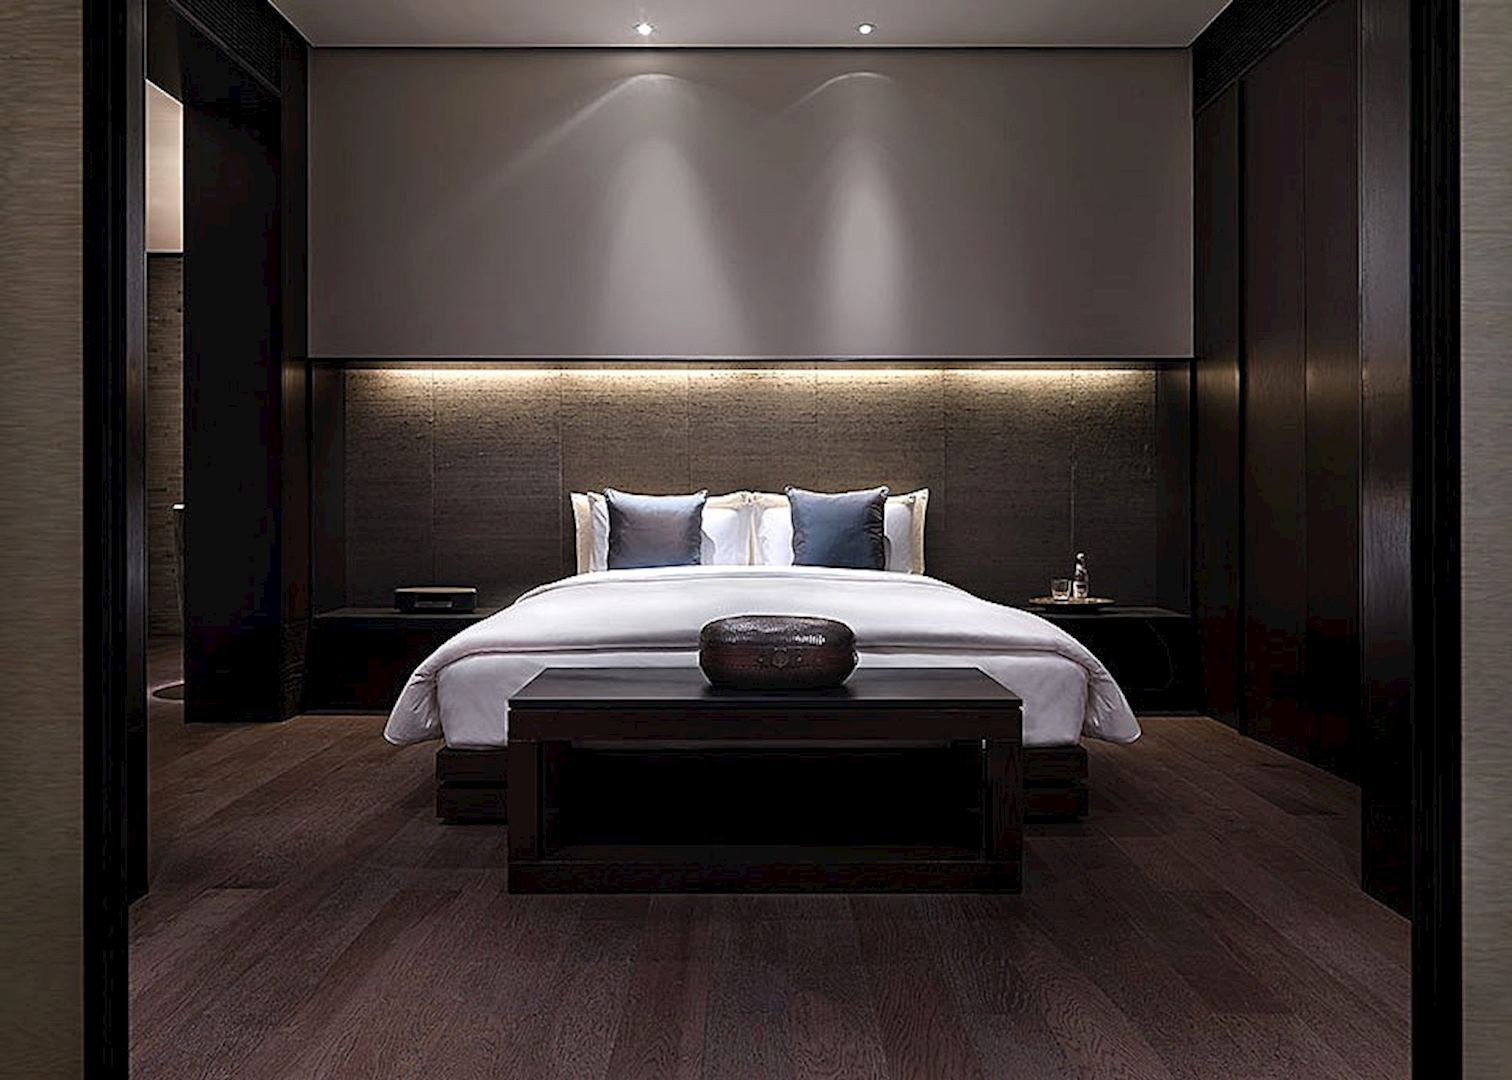 Puli hotel and spa hotels in shanghai audley travel for Modern bedroom interior design ideas 2013